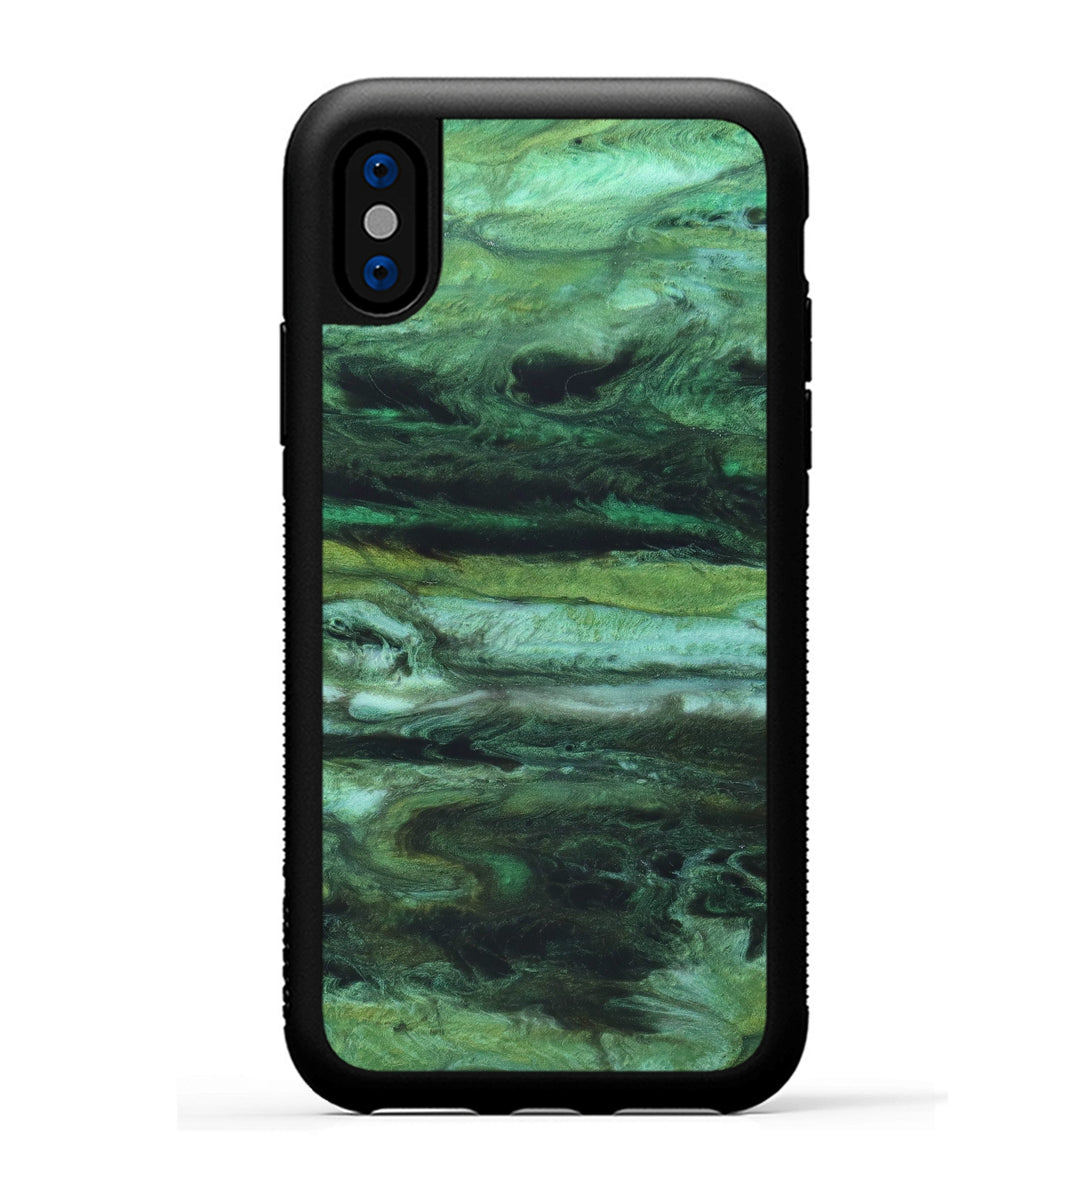 iPhone Xs Case - Krier (Dark Green, 346695)